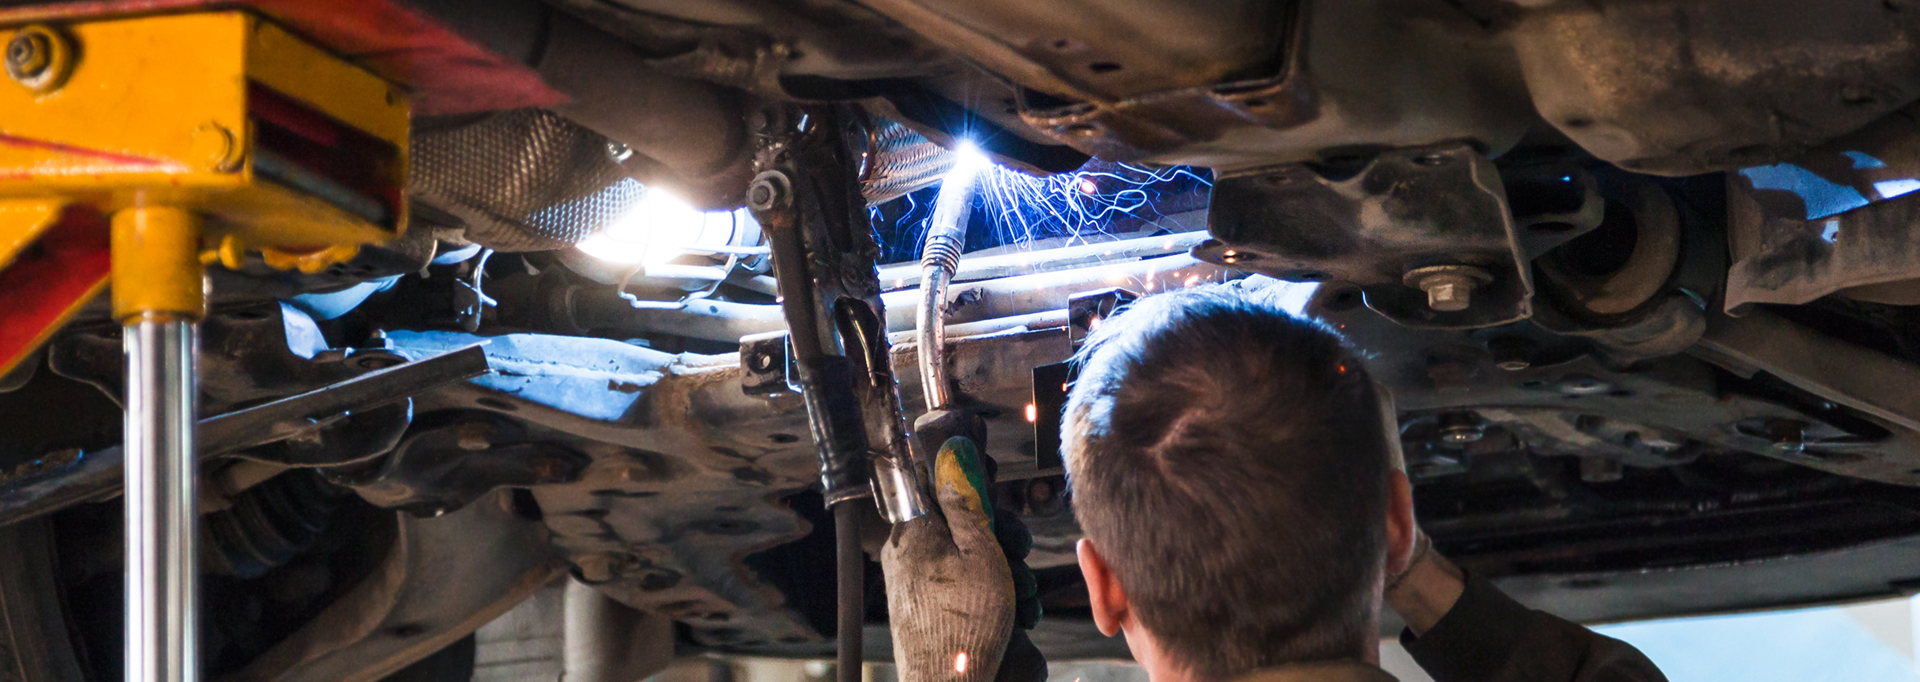 Mechanic welding a vehicle - Car Repairs Wrexham